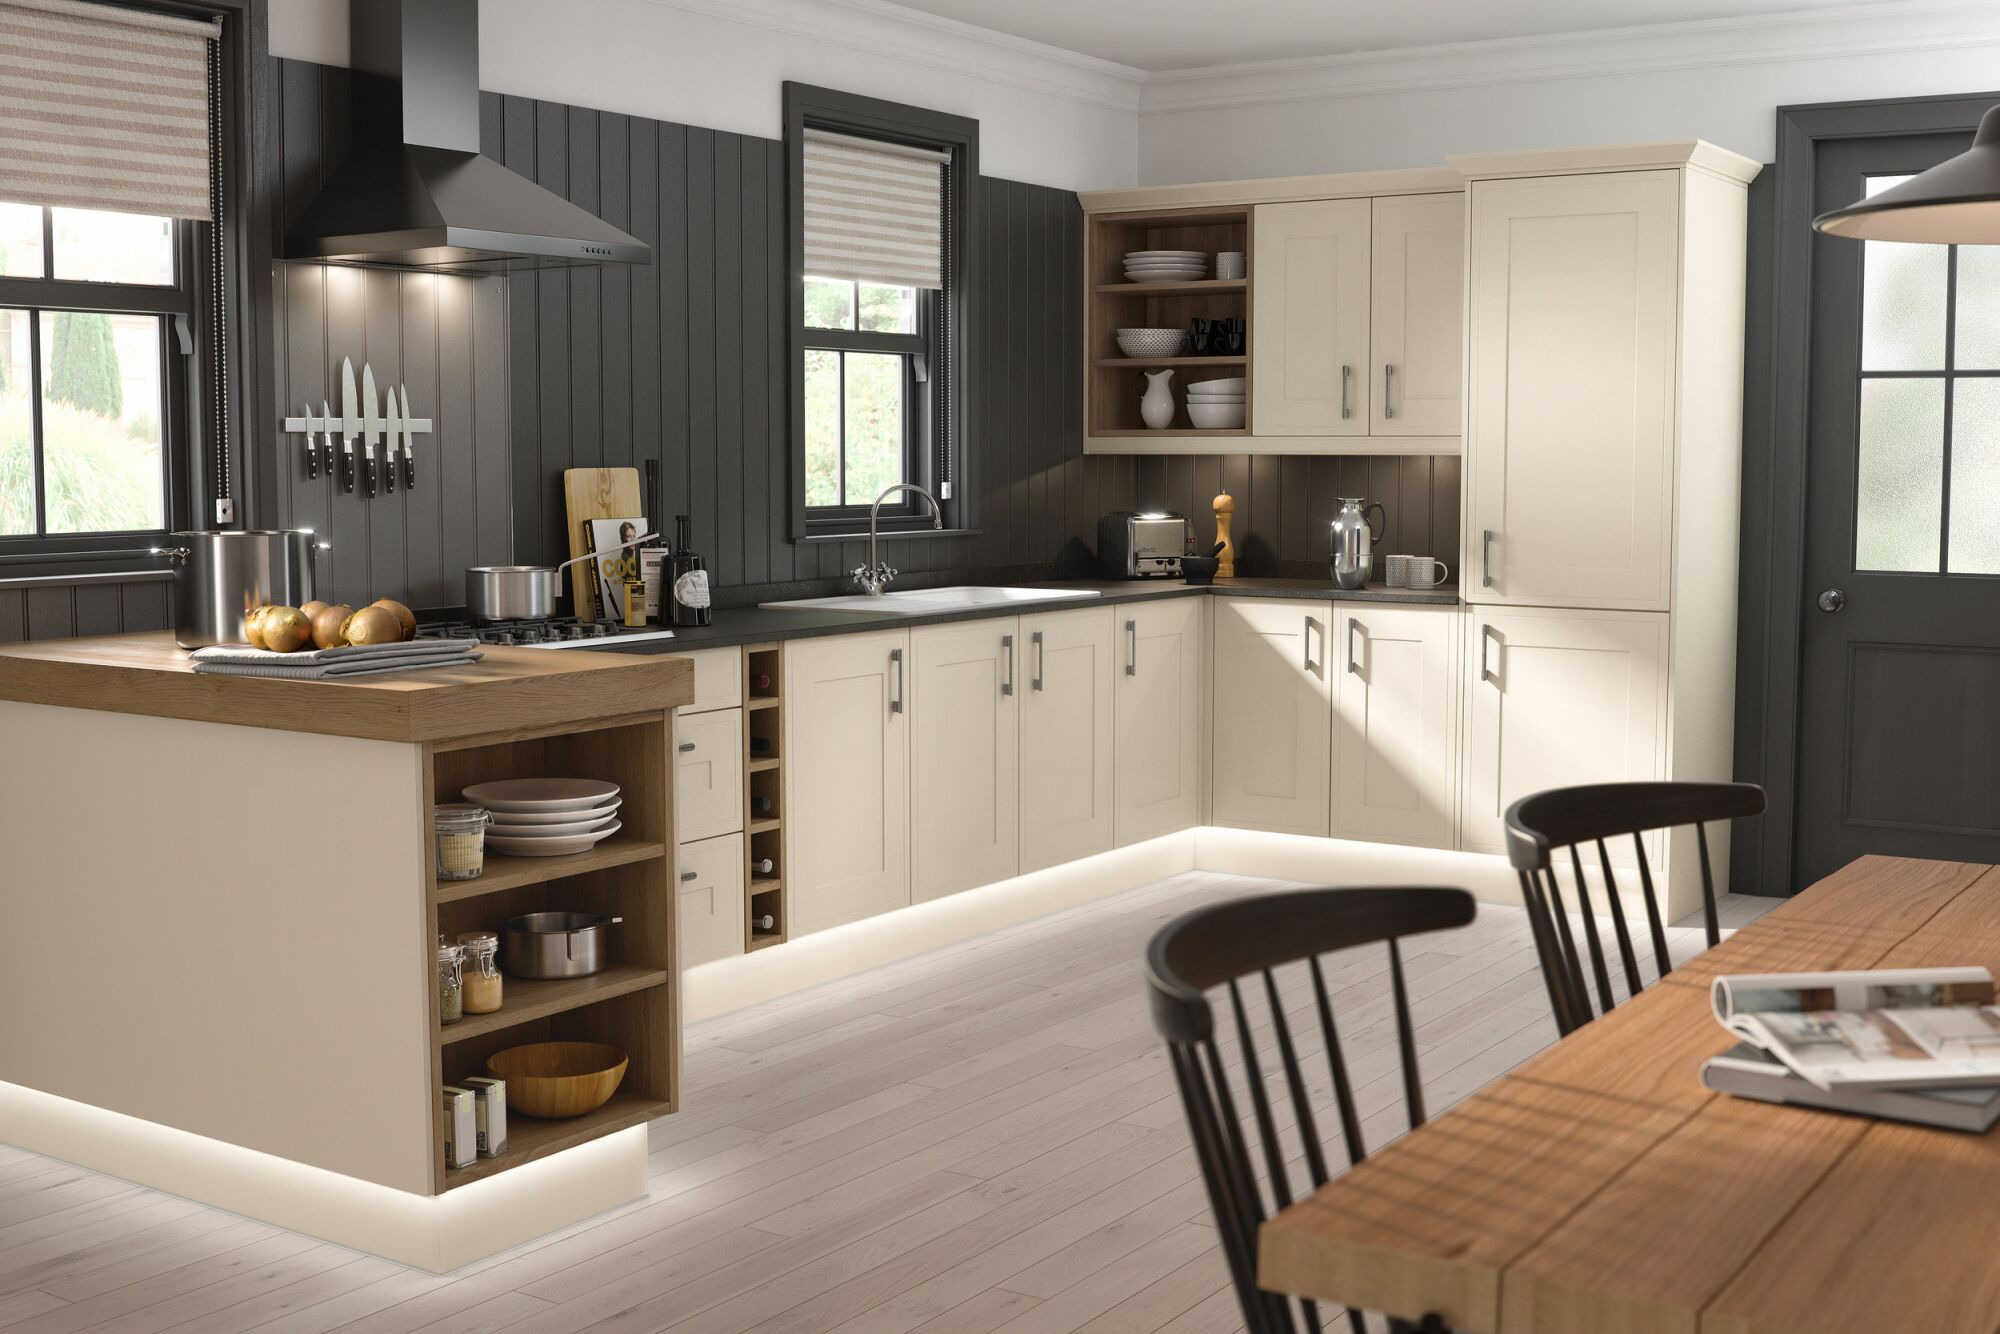 Edwardian Kitchen in Matt Cream